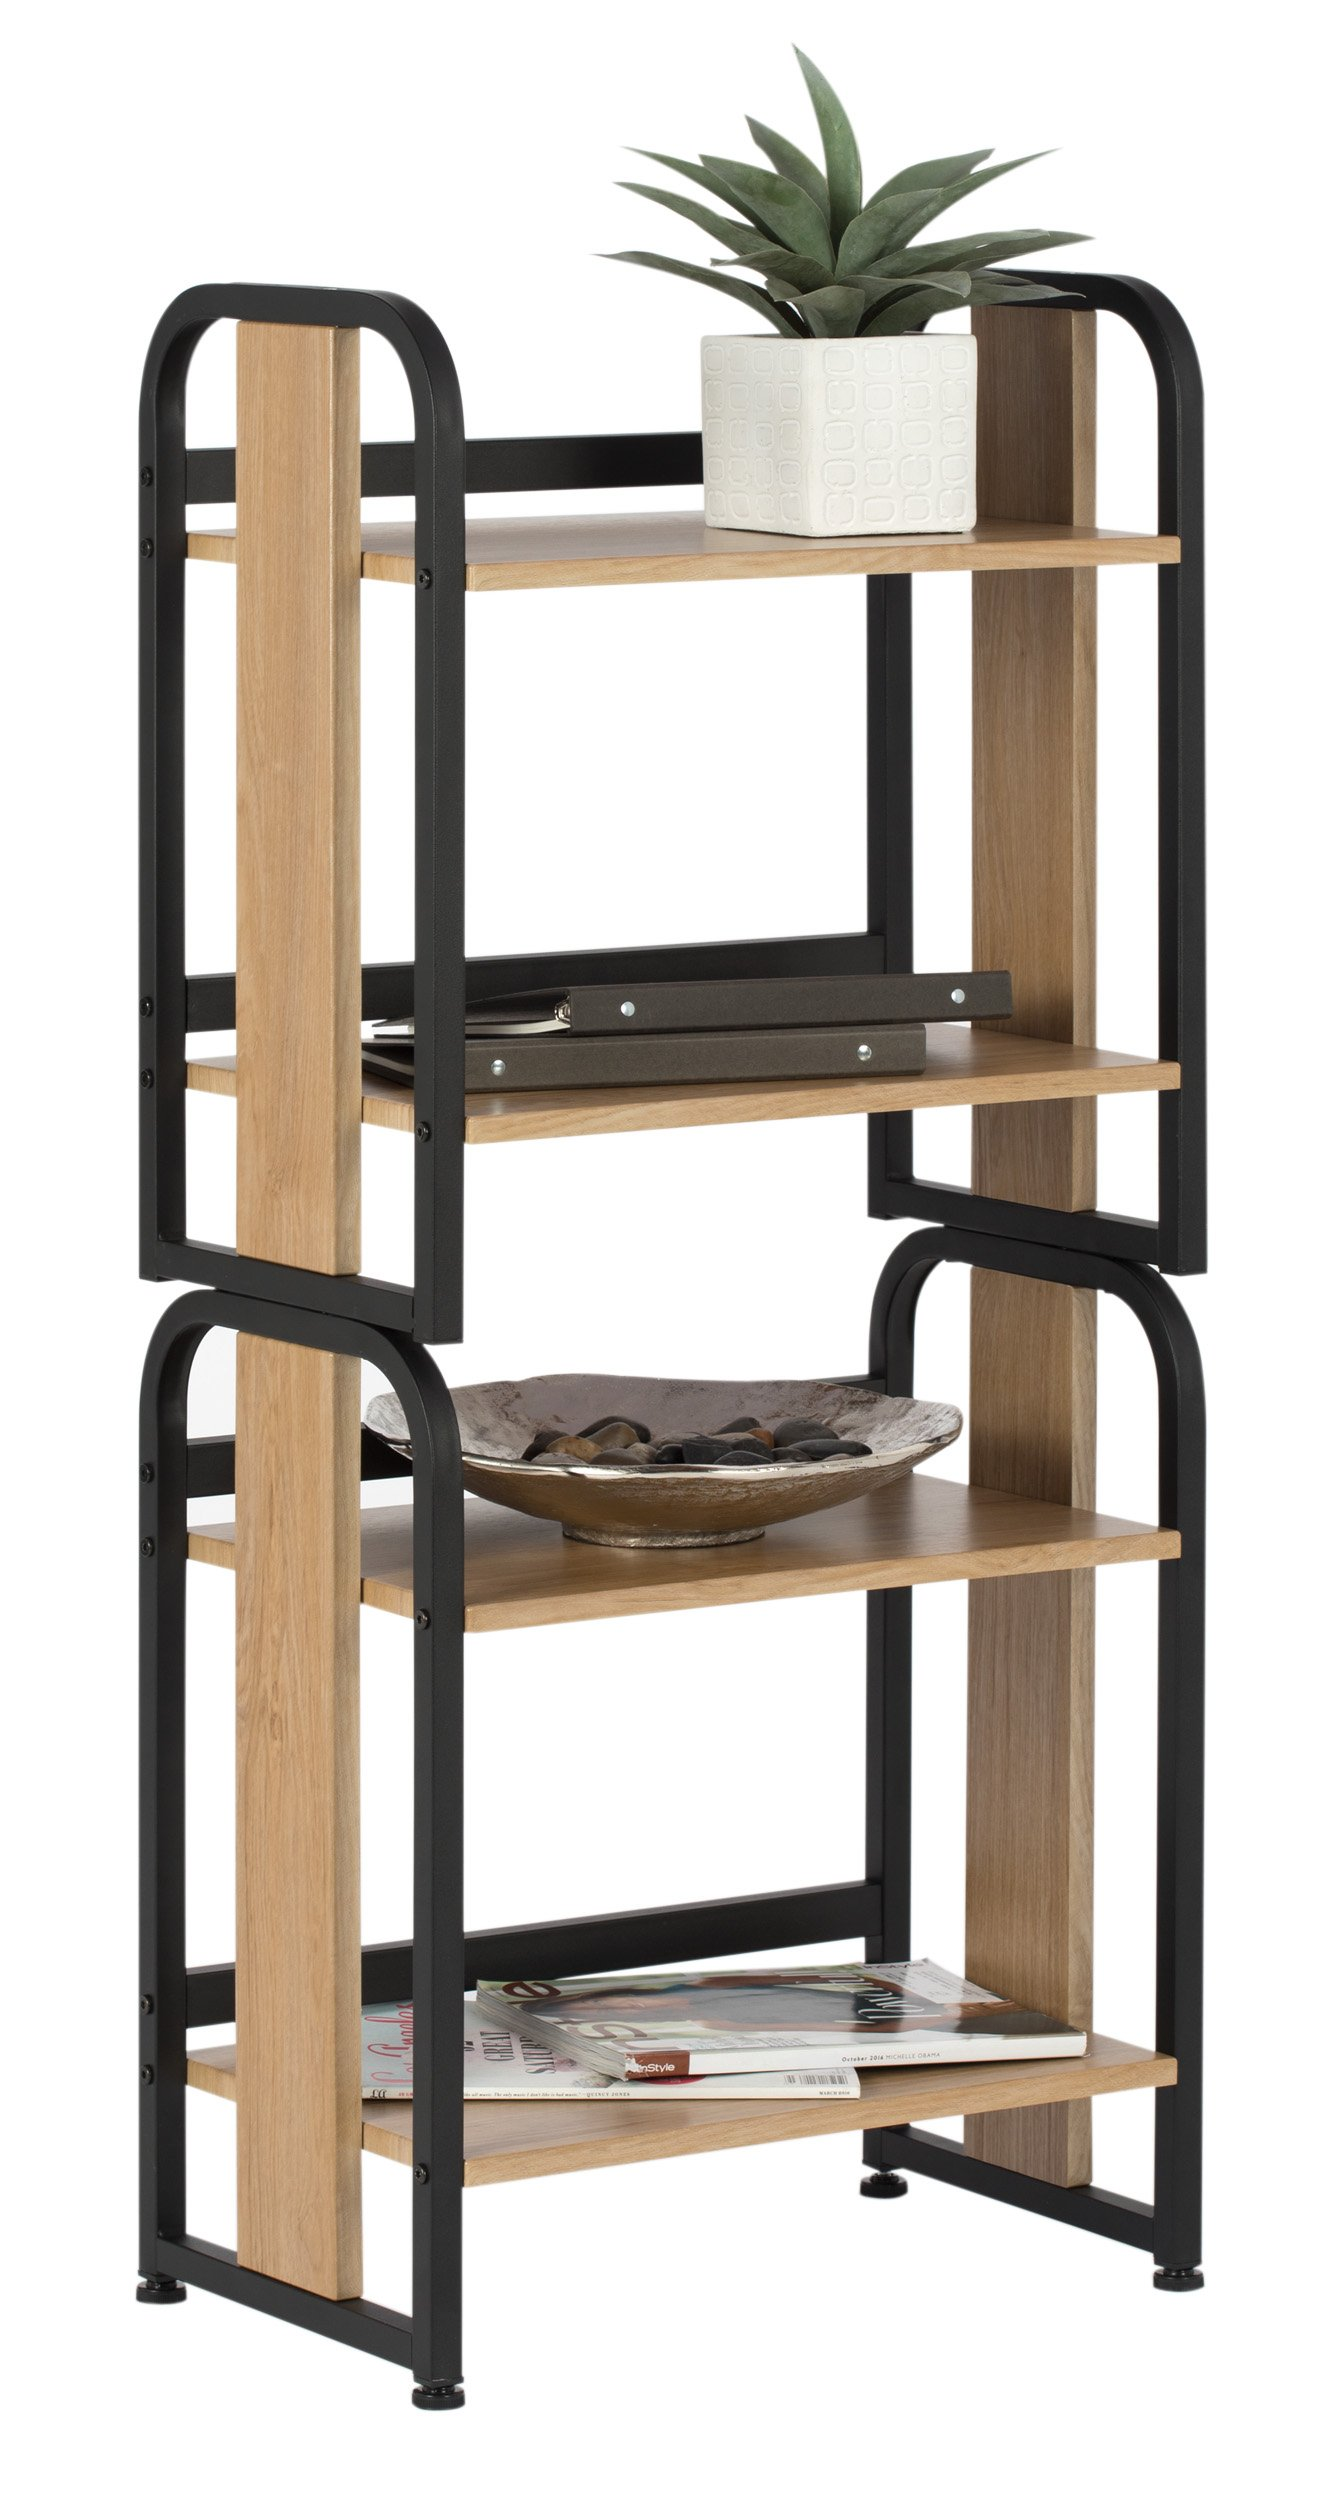 Calico Designs 51249 Modern Ashwood Stackable Bookshelf, Graphite Ashwood by Calico Designs (Image #6)